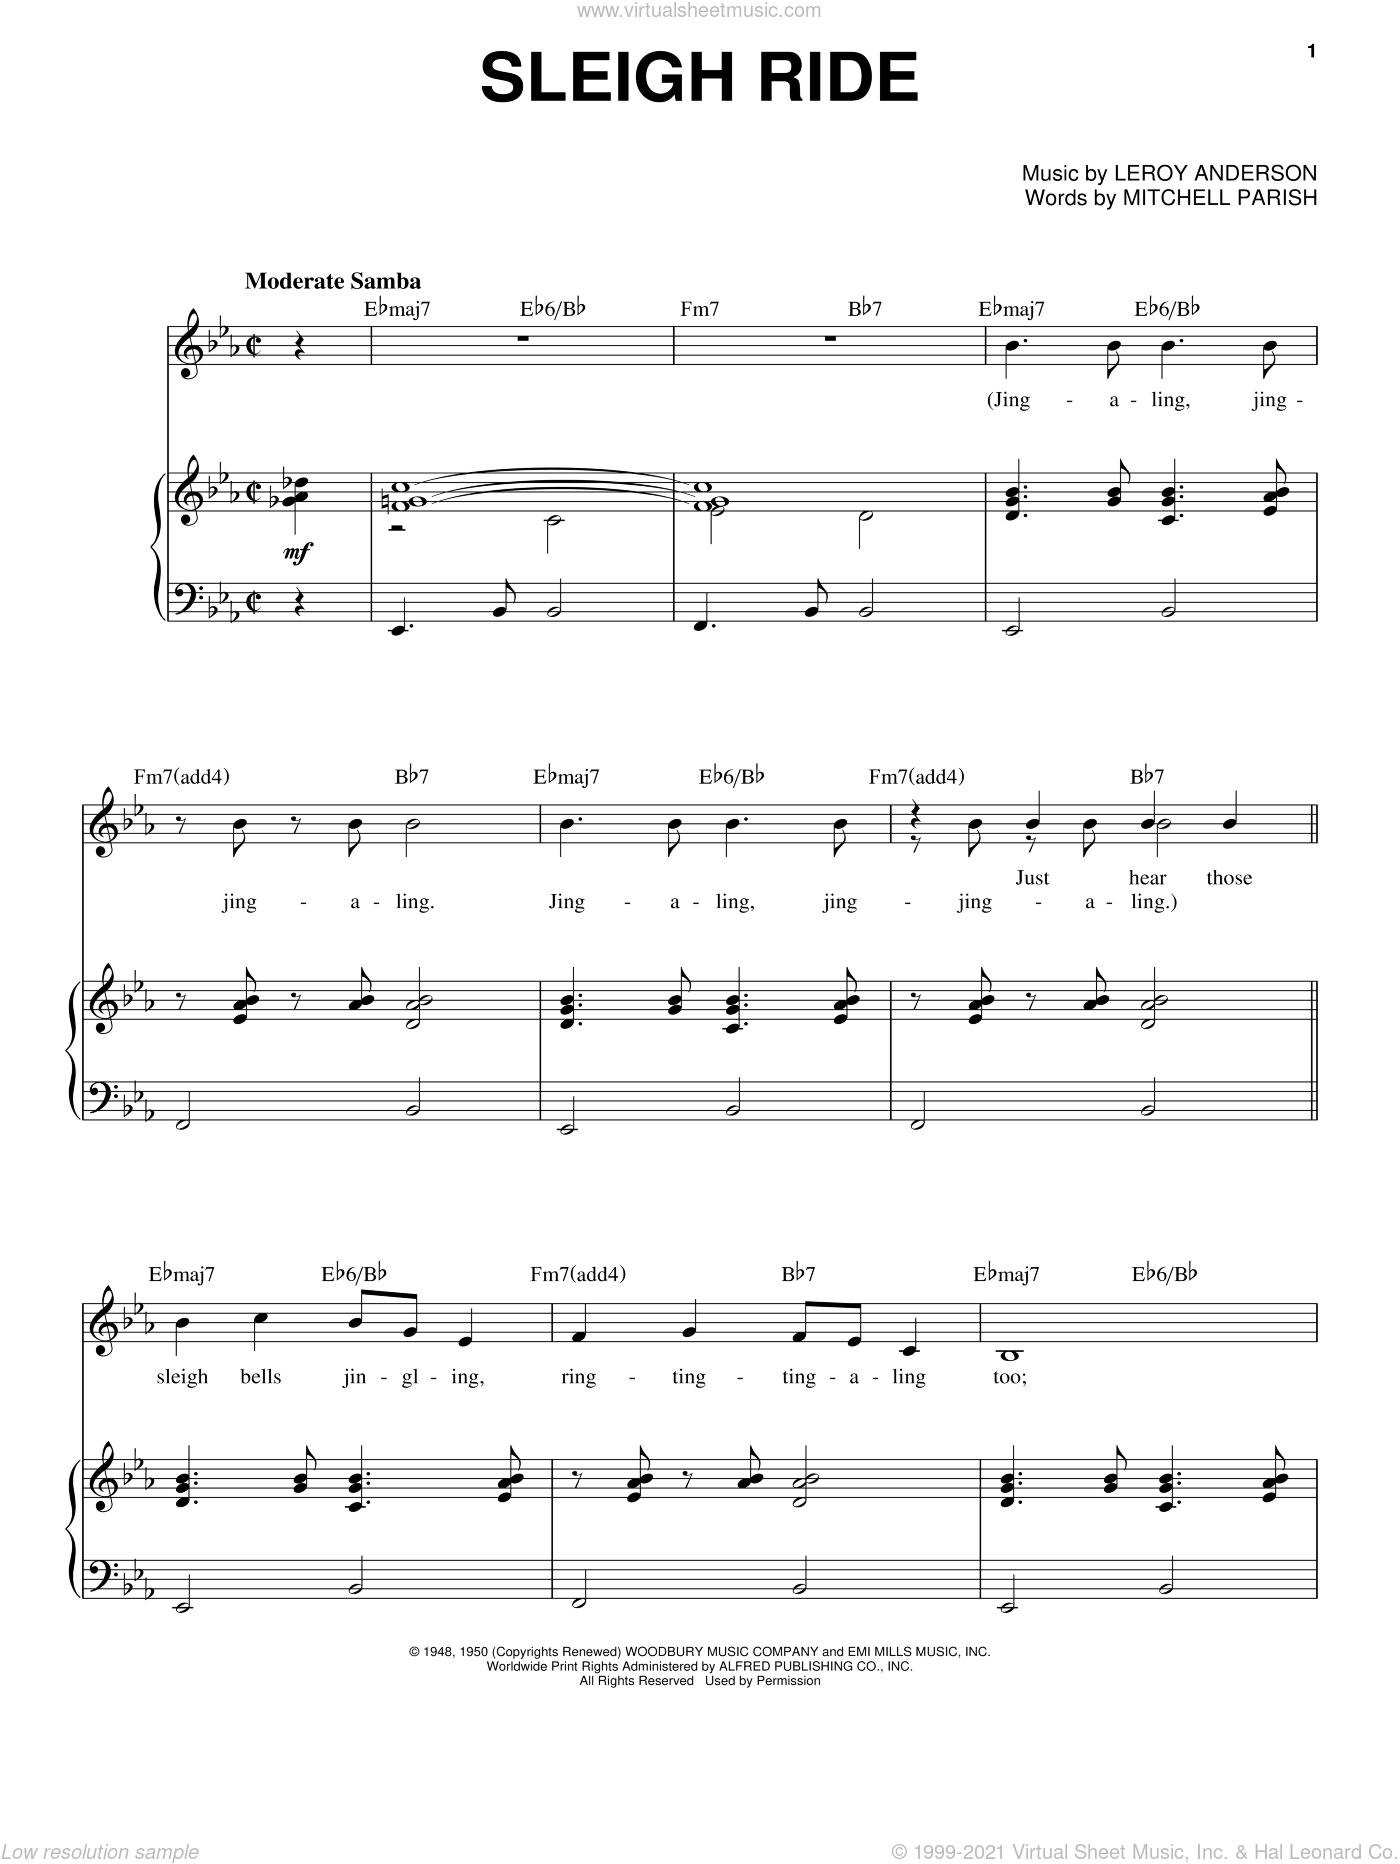 Sleigh Ride sheet music for voice and piano by Leroy Anderson, Andy Williams and Mitchell Parish, Christmas carol score, intermediate voice. Score Image Preview.